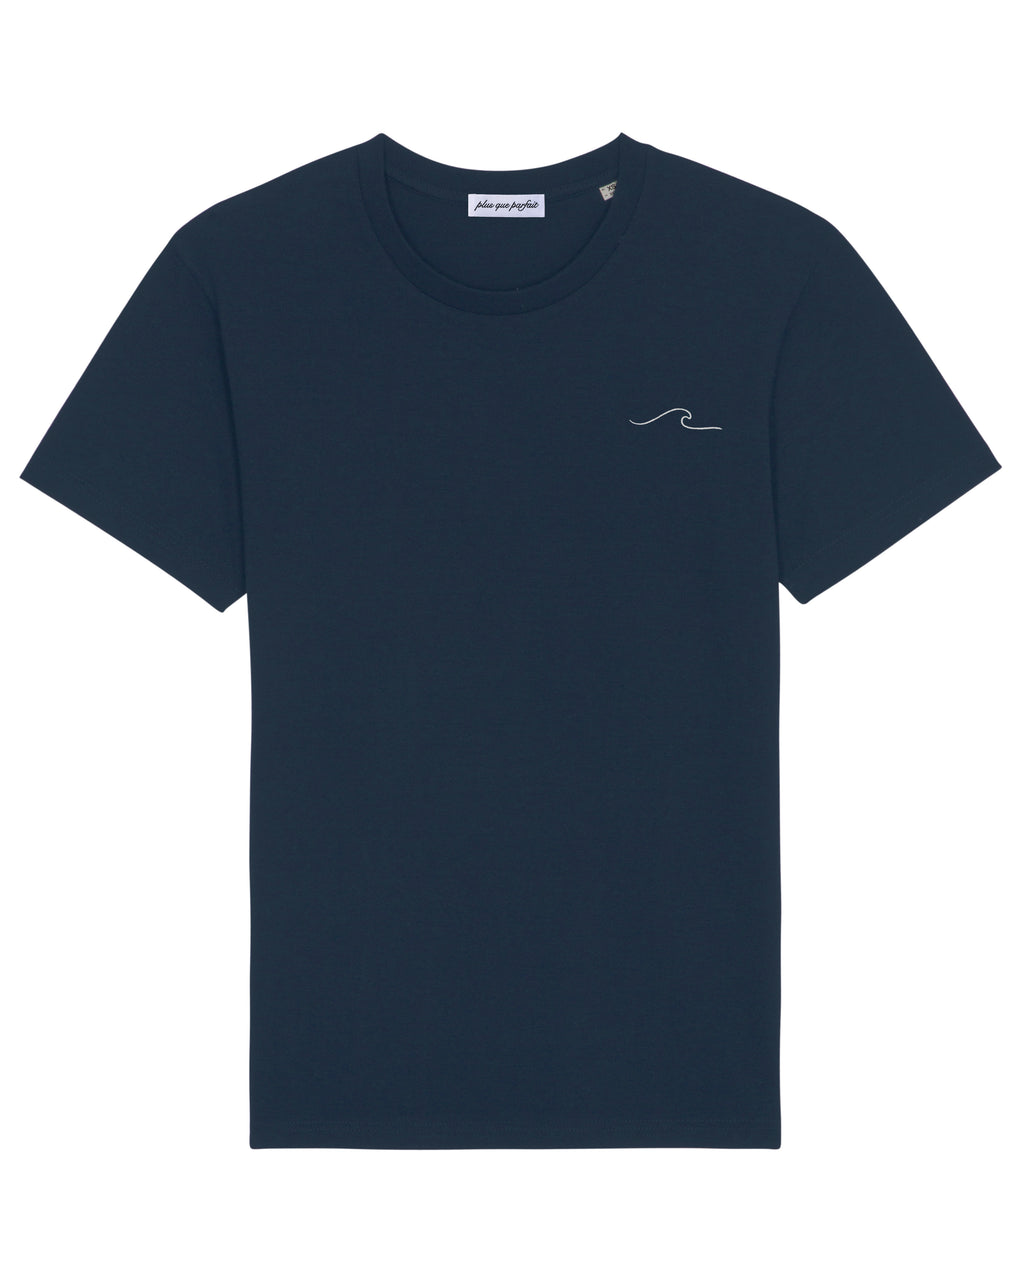 NAVY WAVE T-SHIRT